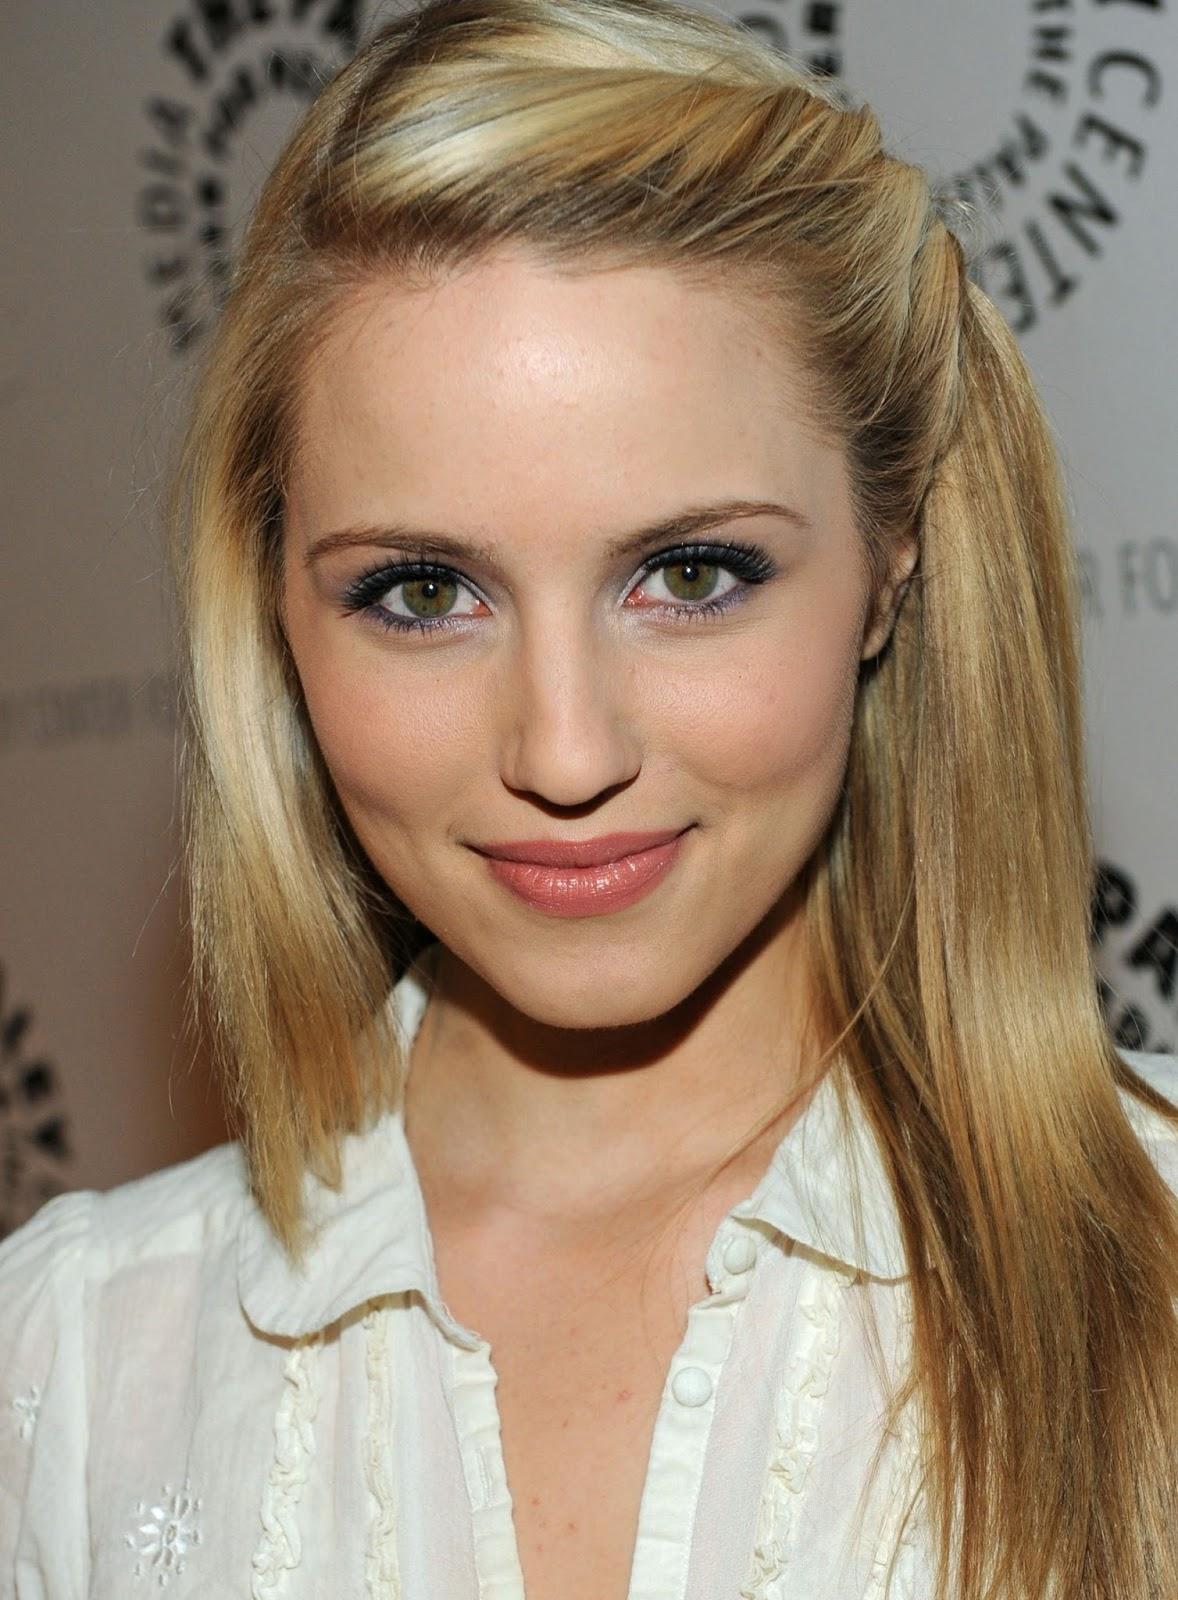 Watch Dianna Agron born April 30, 1986 (age 32) video